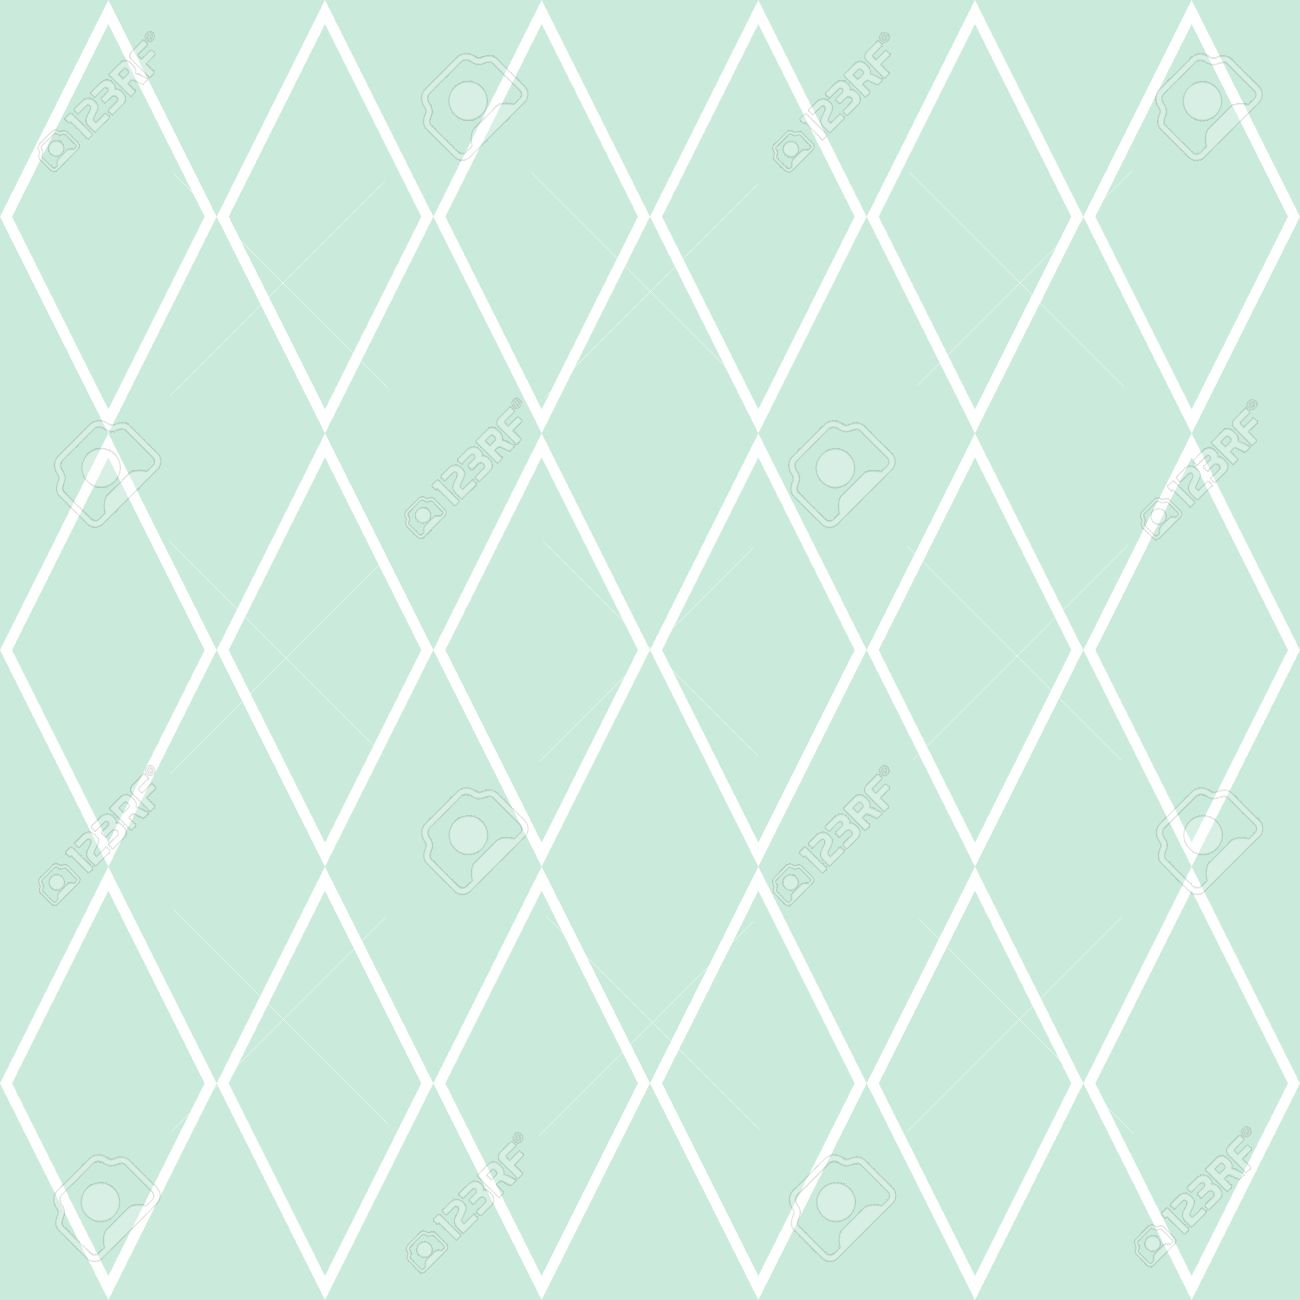 Lilly Pulitzer Wallpaper Quotes Download Mint Green Patterned Wallpaper Gallery